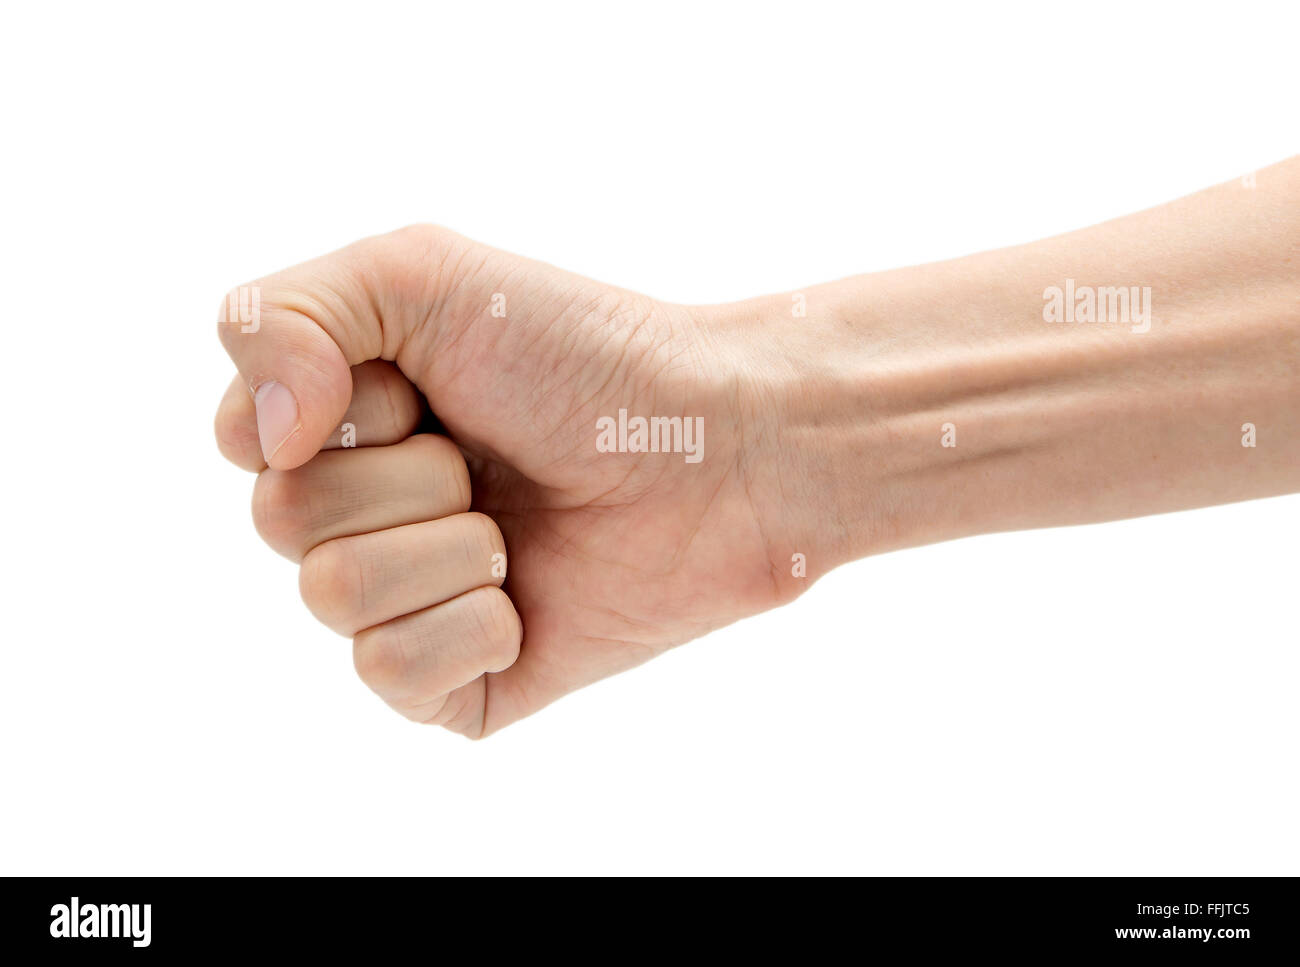 Man hand holding some like a blank card isolated on a white background - Stock Image